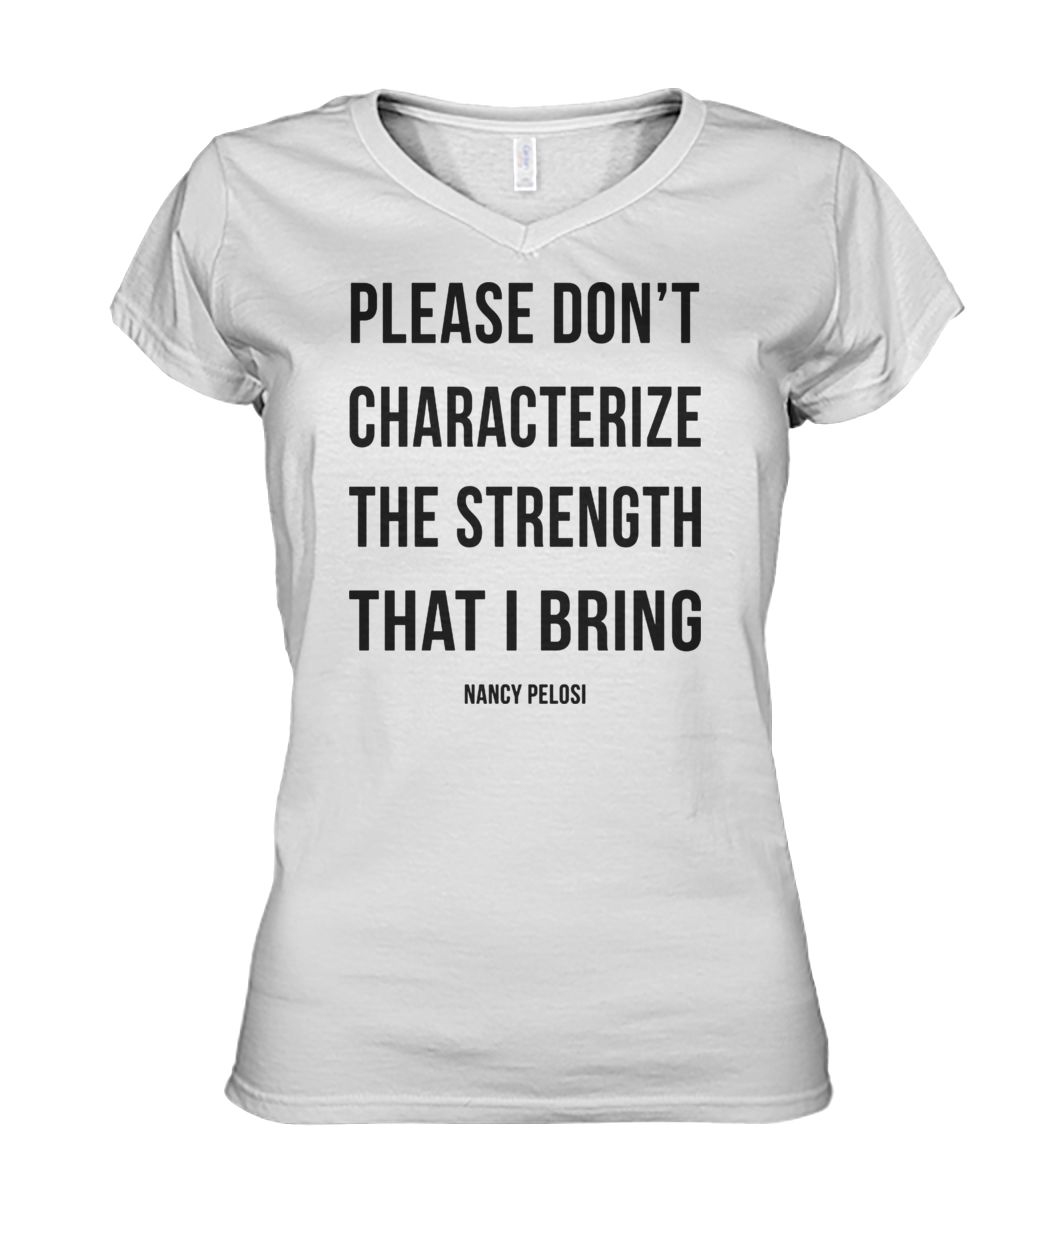 Please don't characterize the strength that I bring women's v-neck